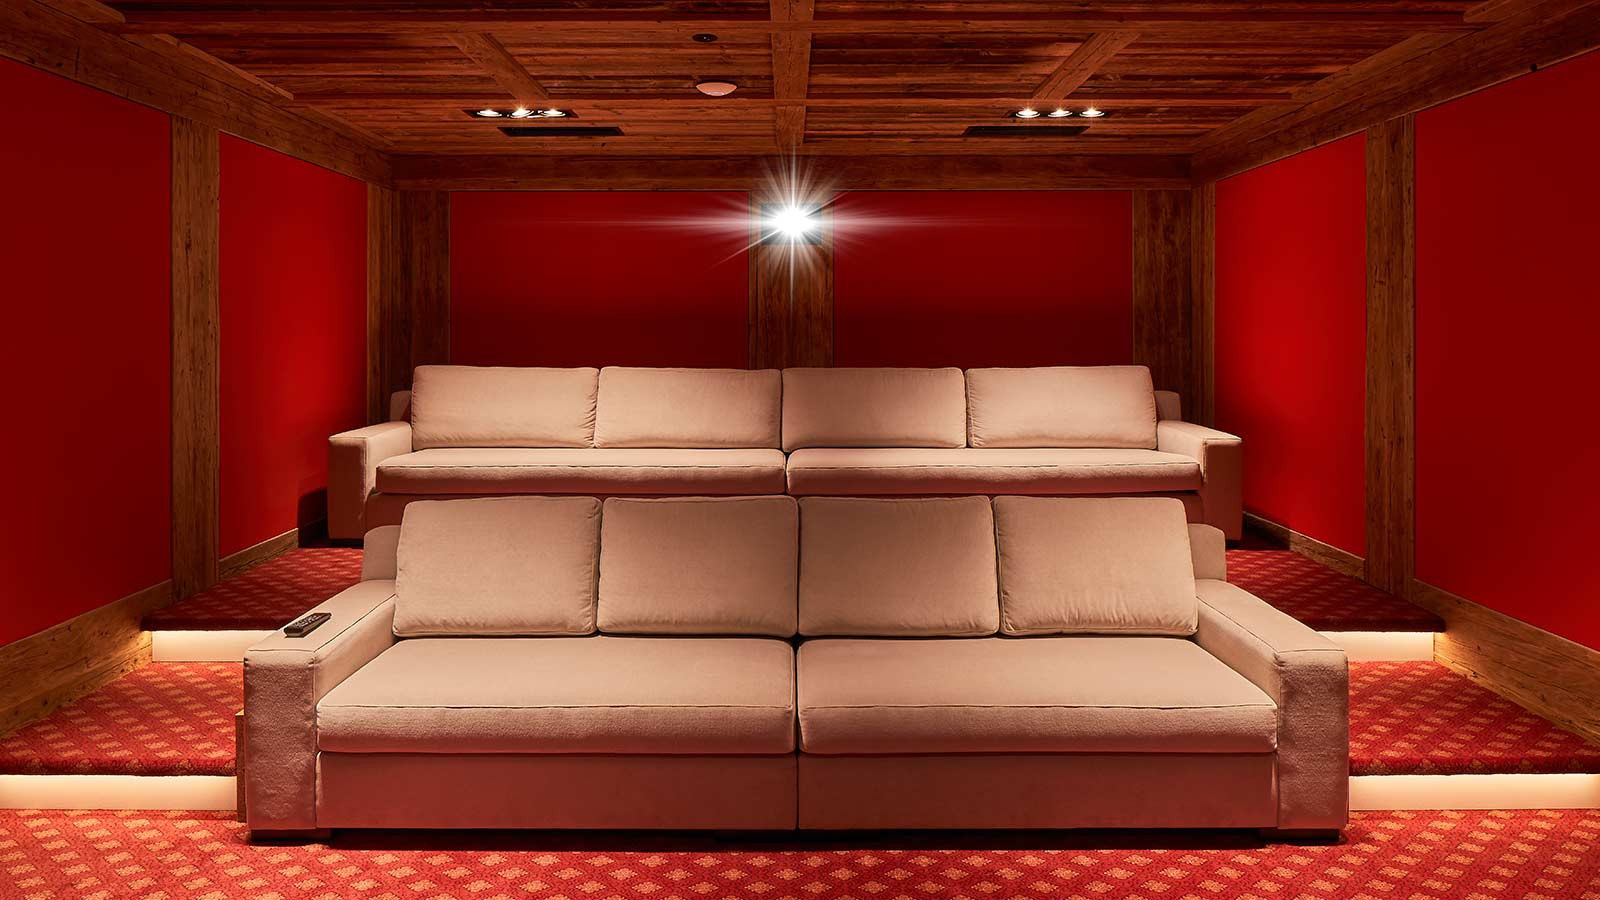 Hotel Sassongher, Corvara and Colfosco - Cinema Room